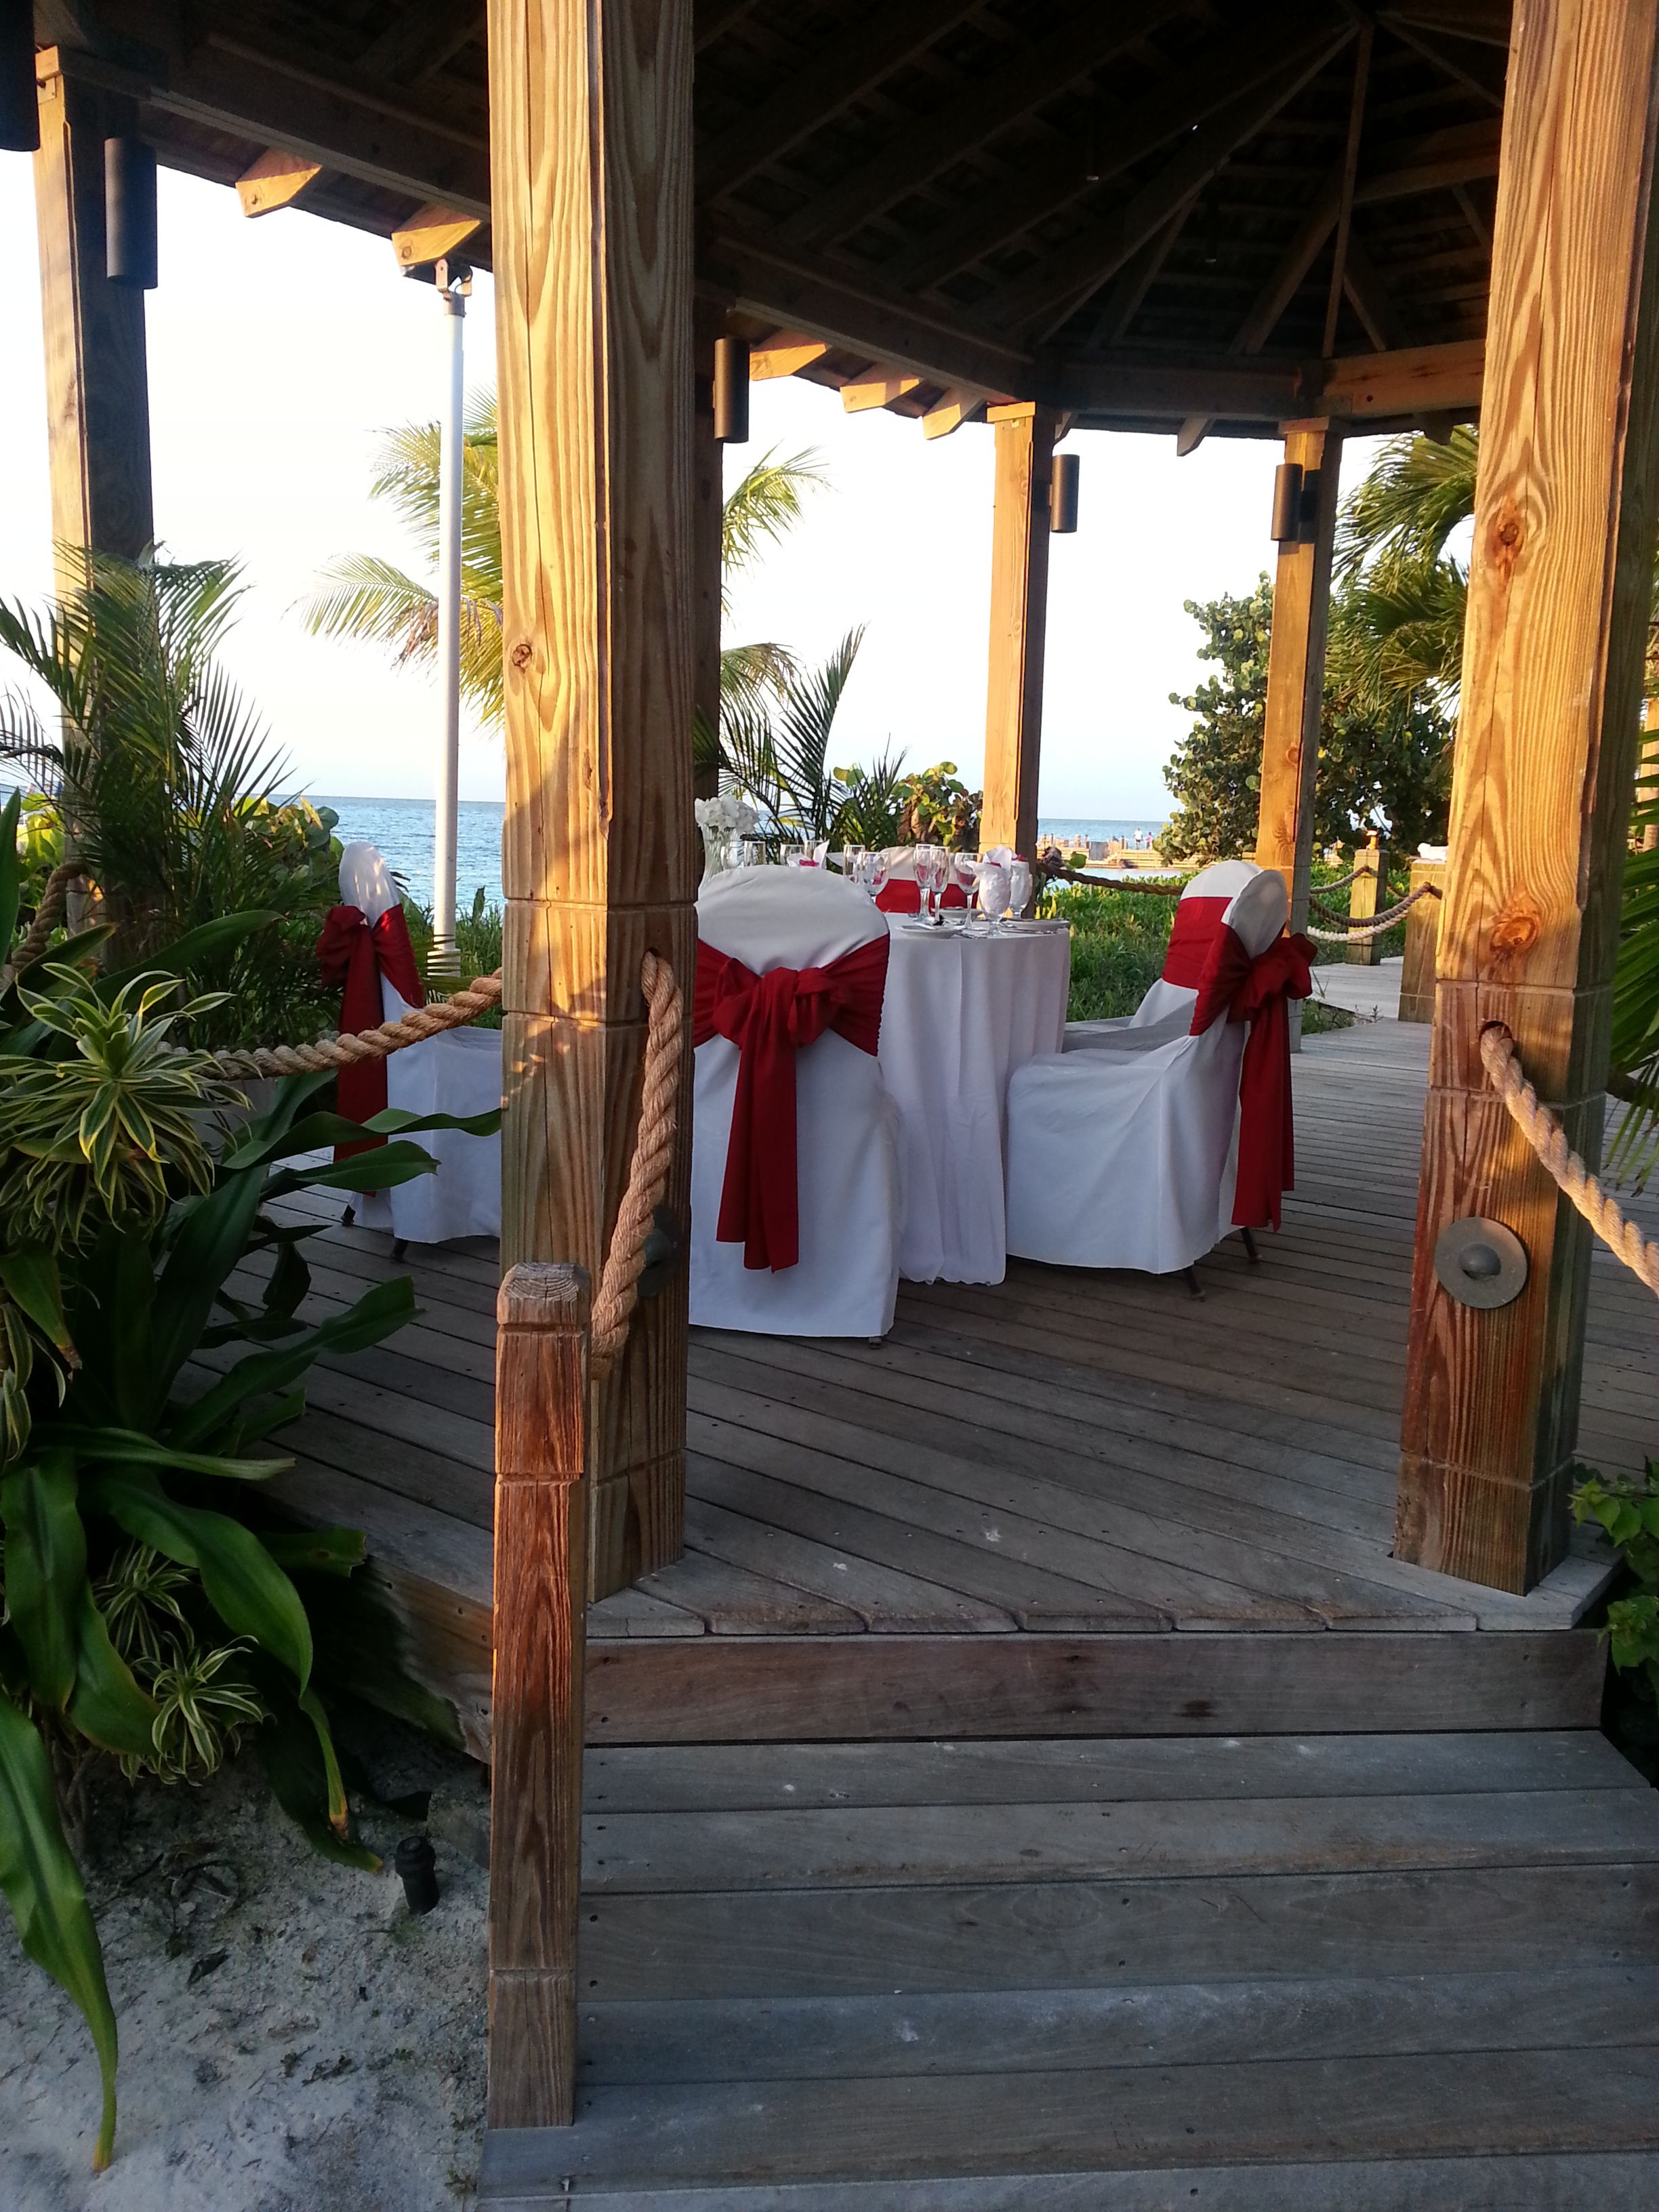 Dinner setting for a family of 5 on the beach http://www.experiencetravelin.com